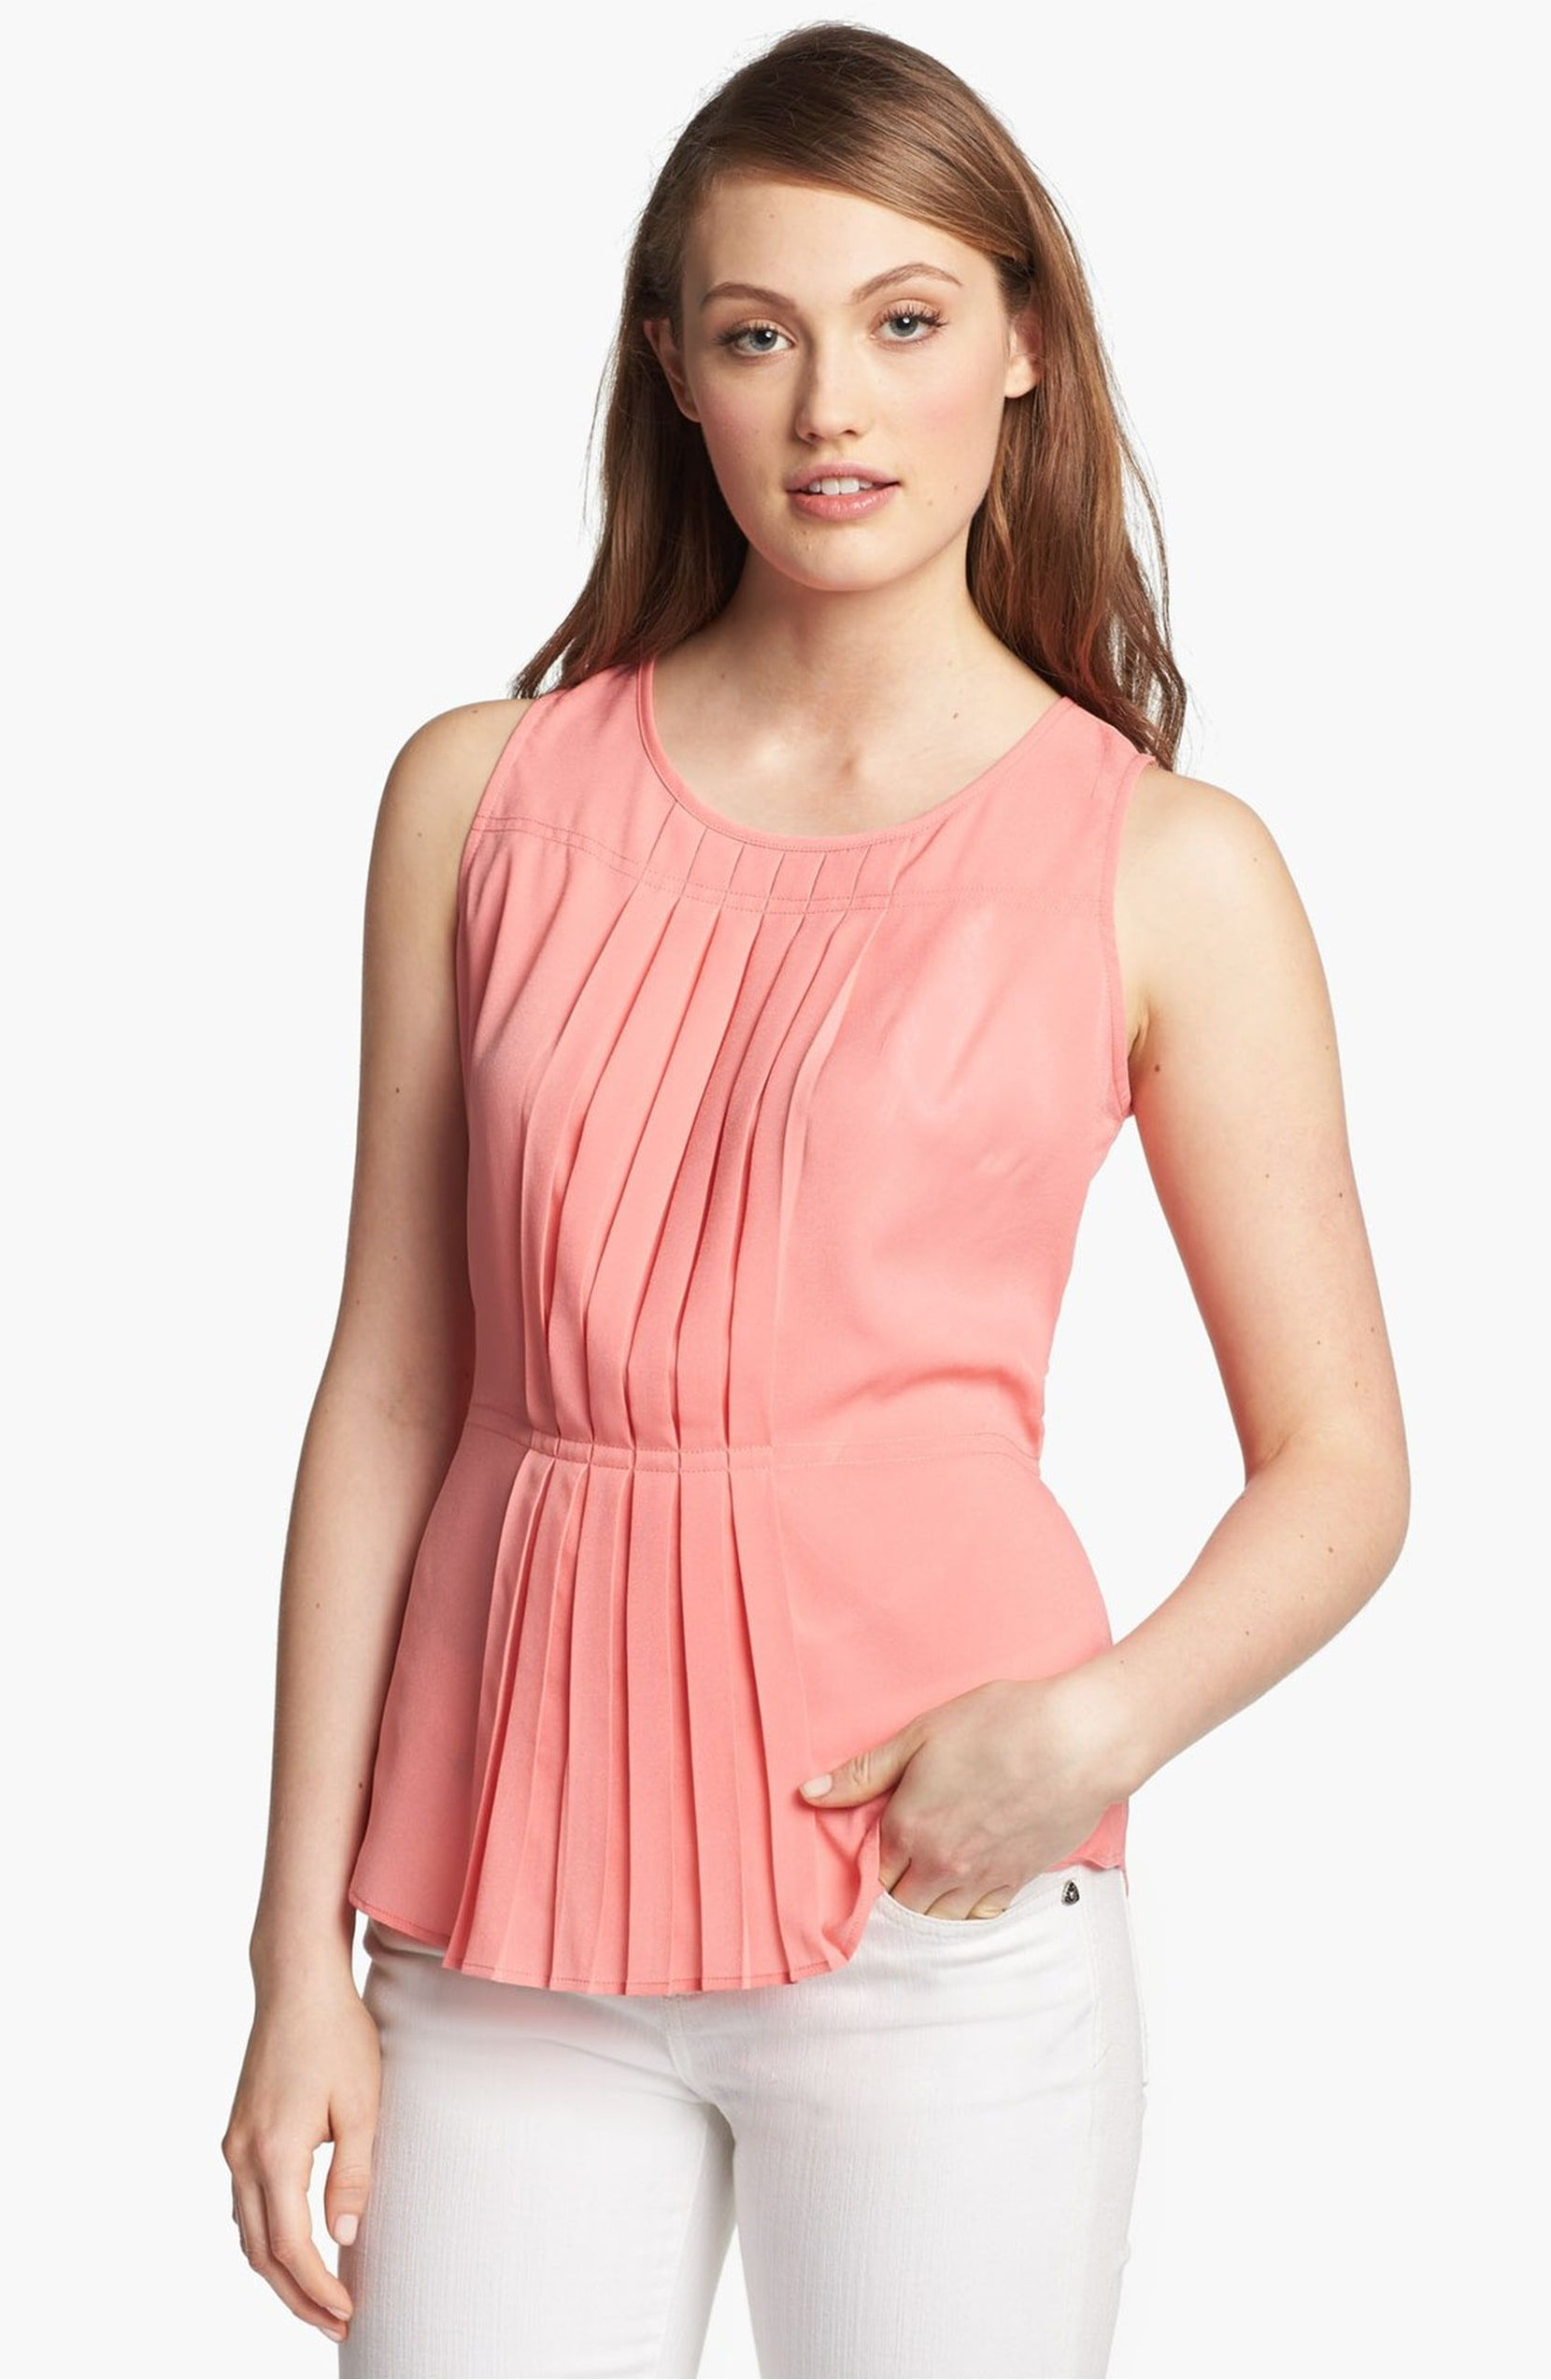 Pleat Front Top, Main, Color, Blushing Coral